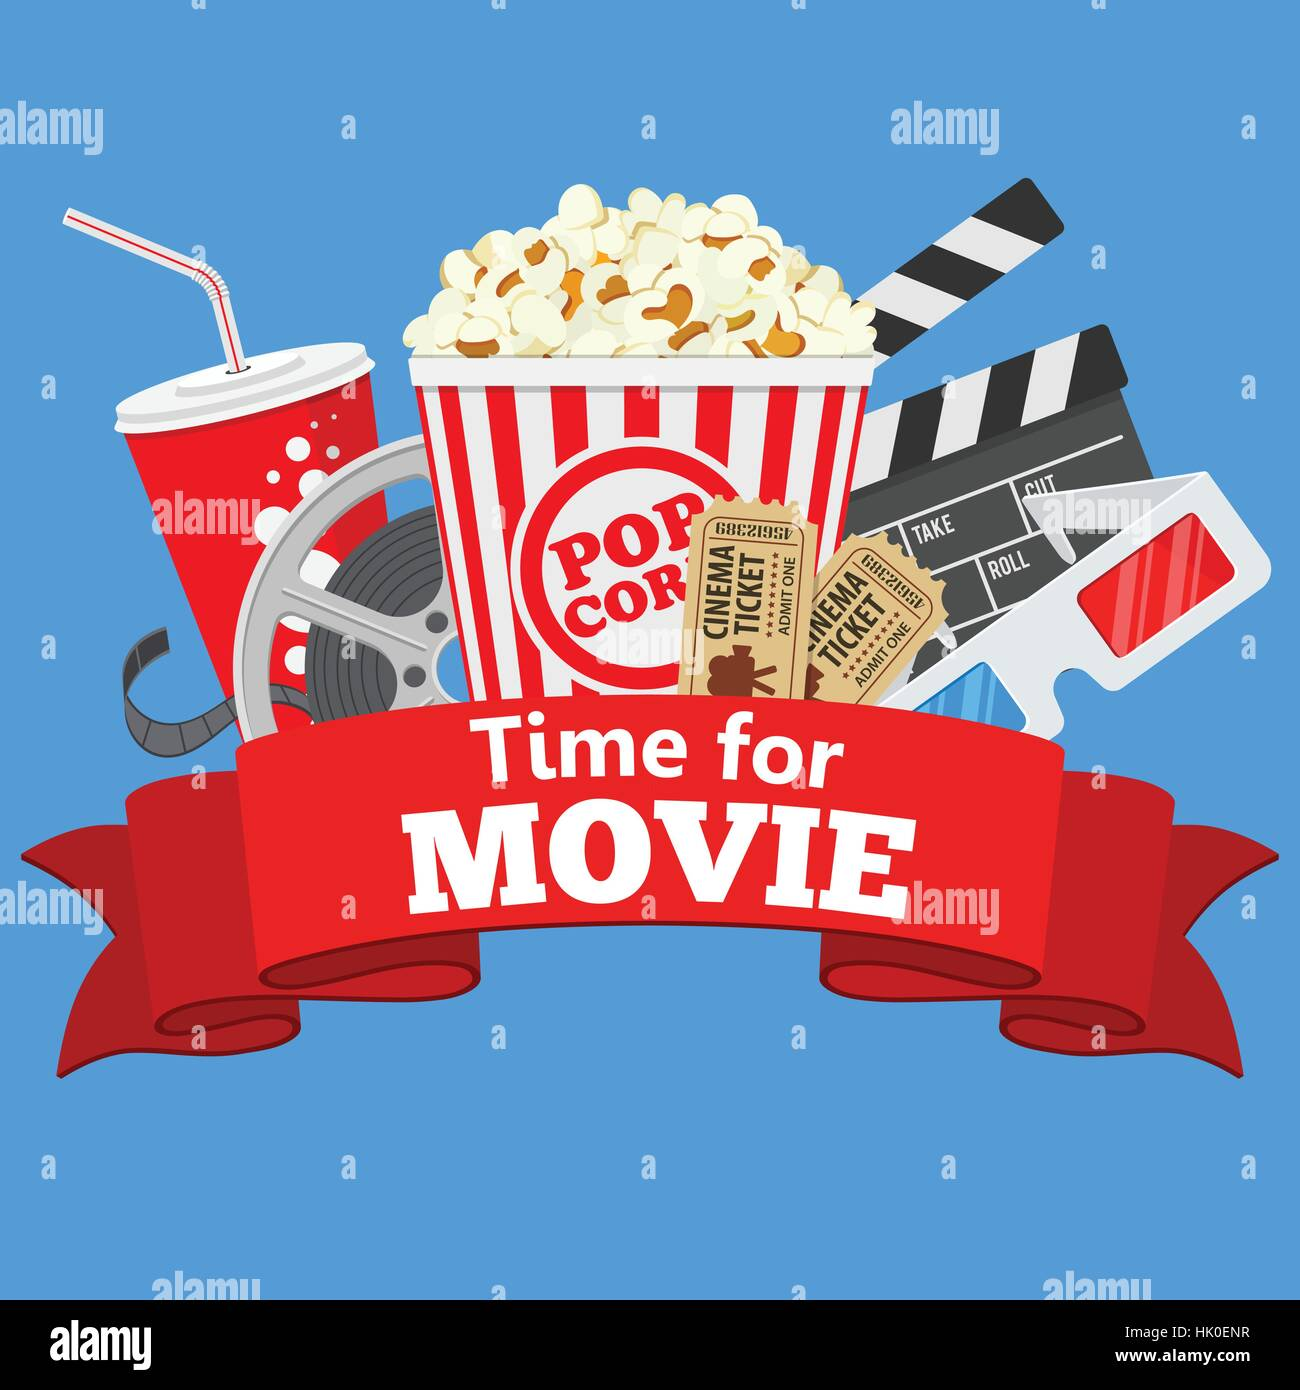 Movie time wallpaper Vector Image - 1804982   StockUnlimited